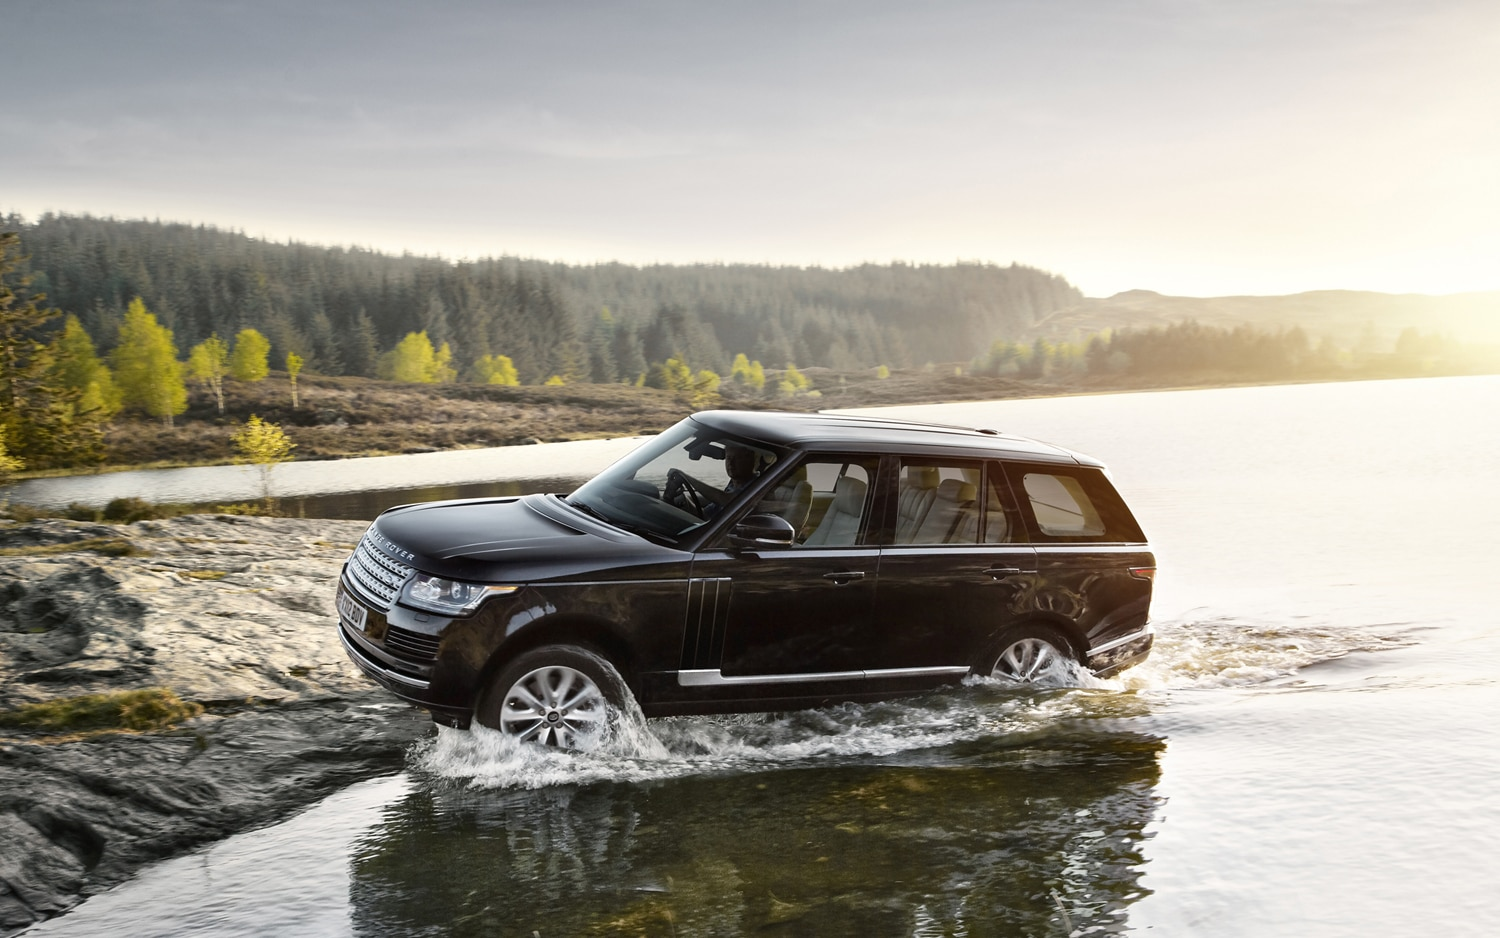 2013 Land Rover Range Rover Side In River